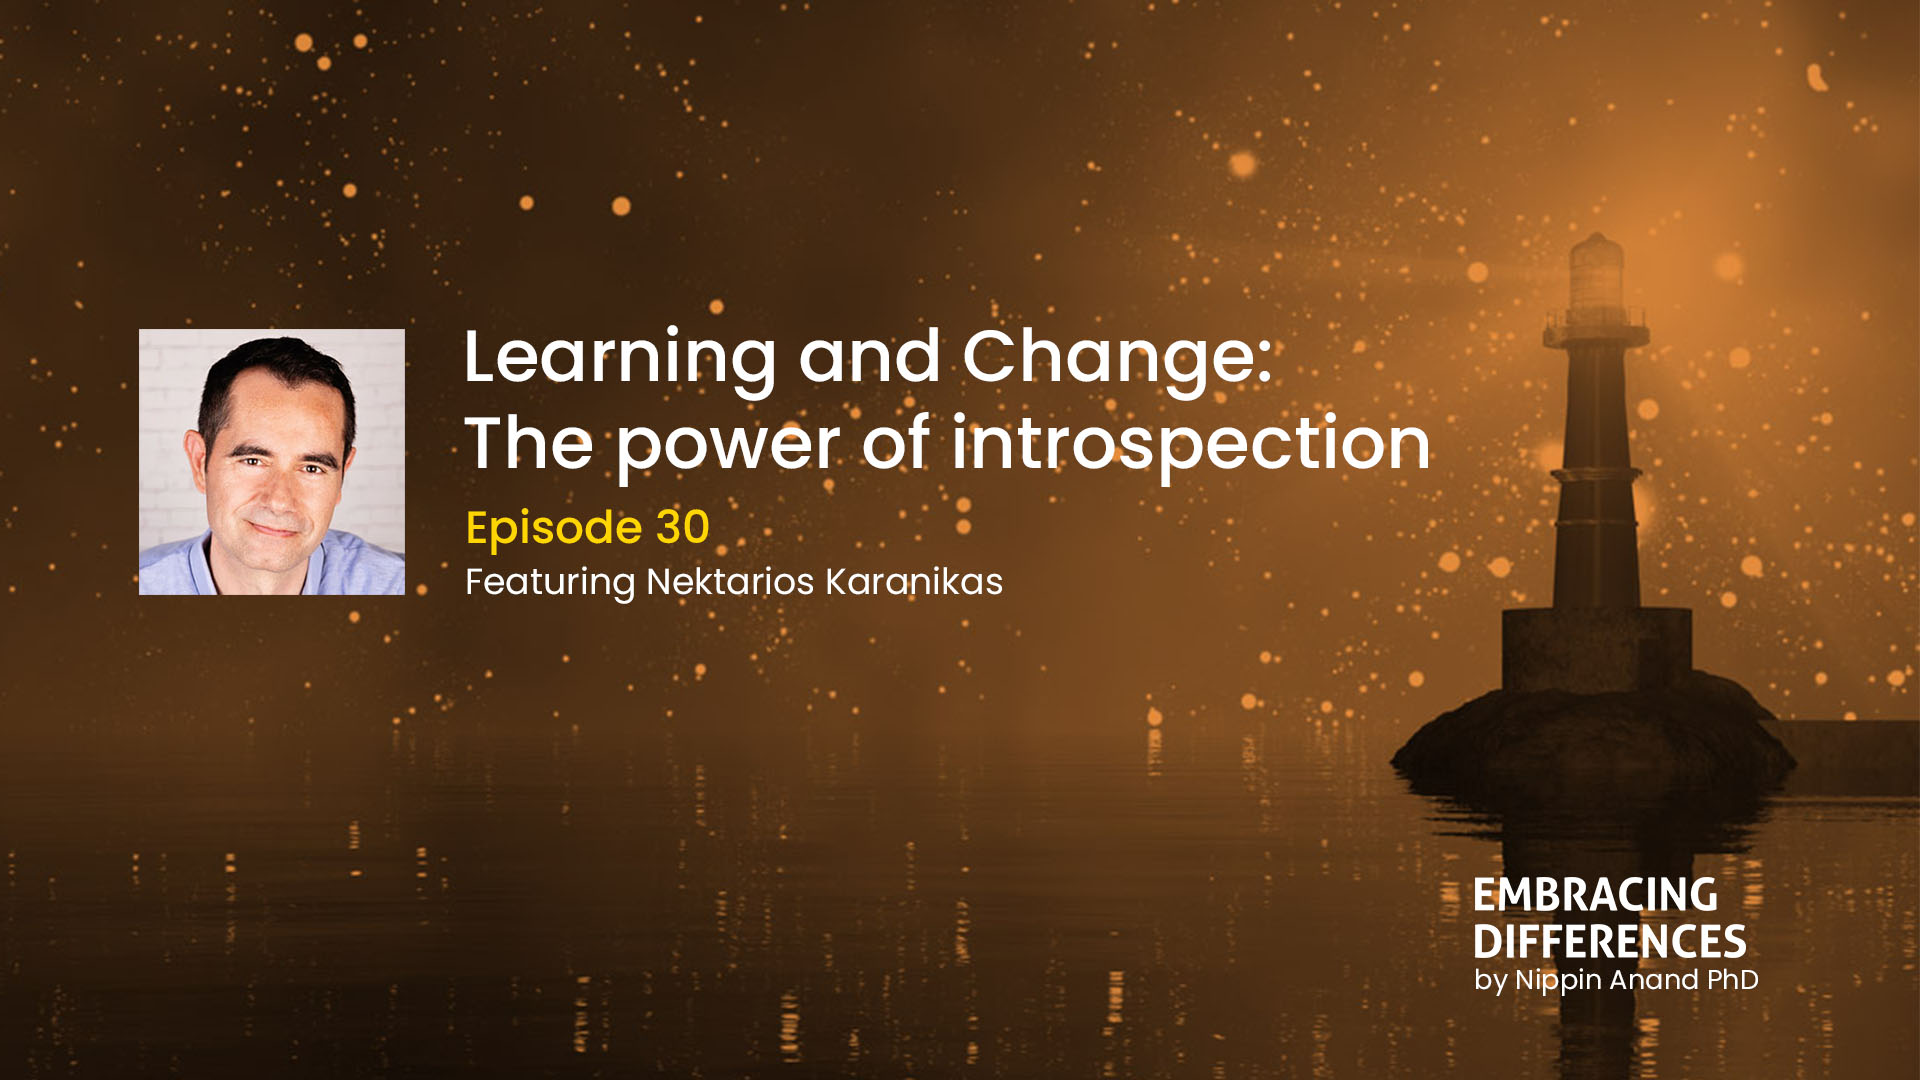 Learning and Change: The power of introspection